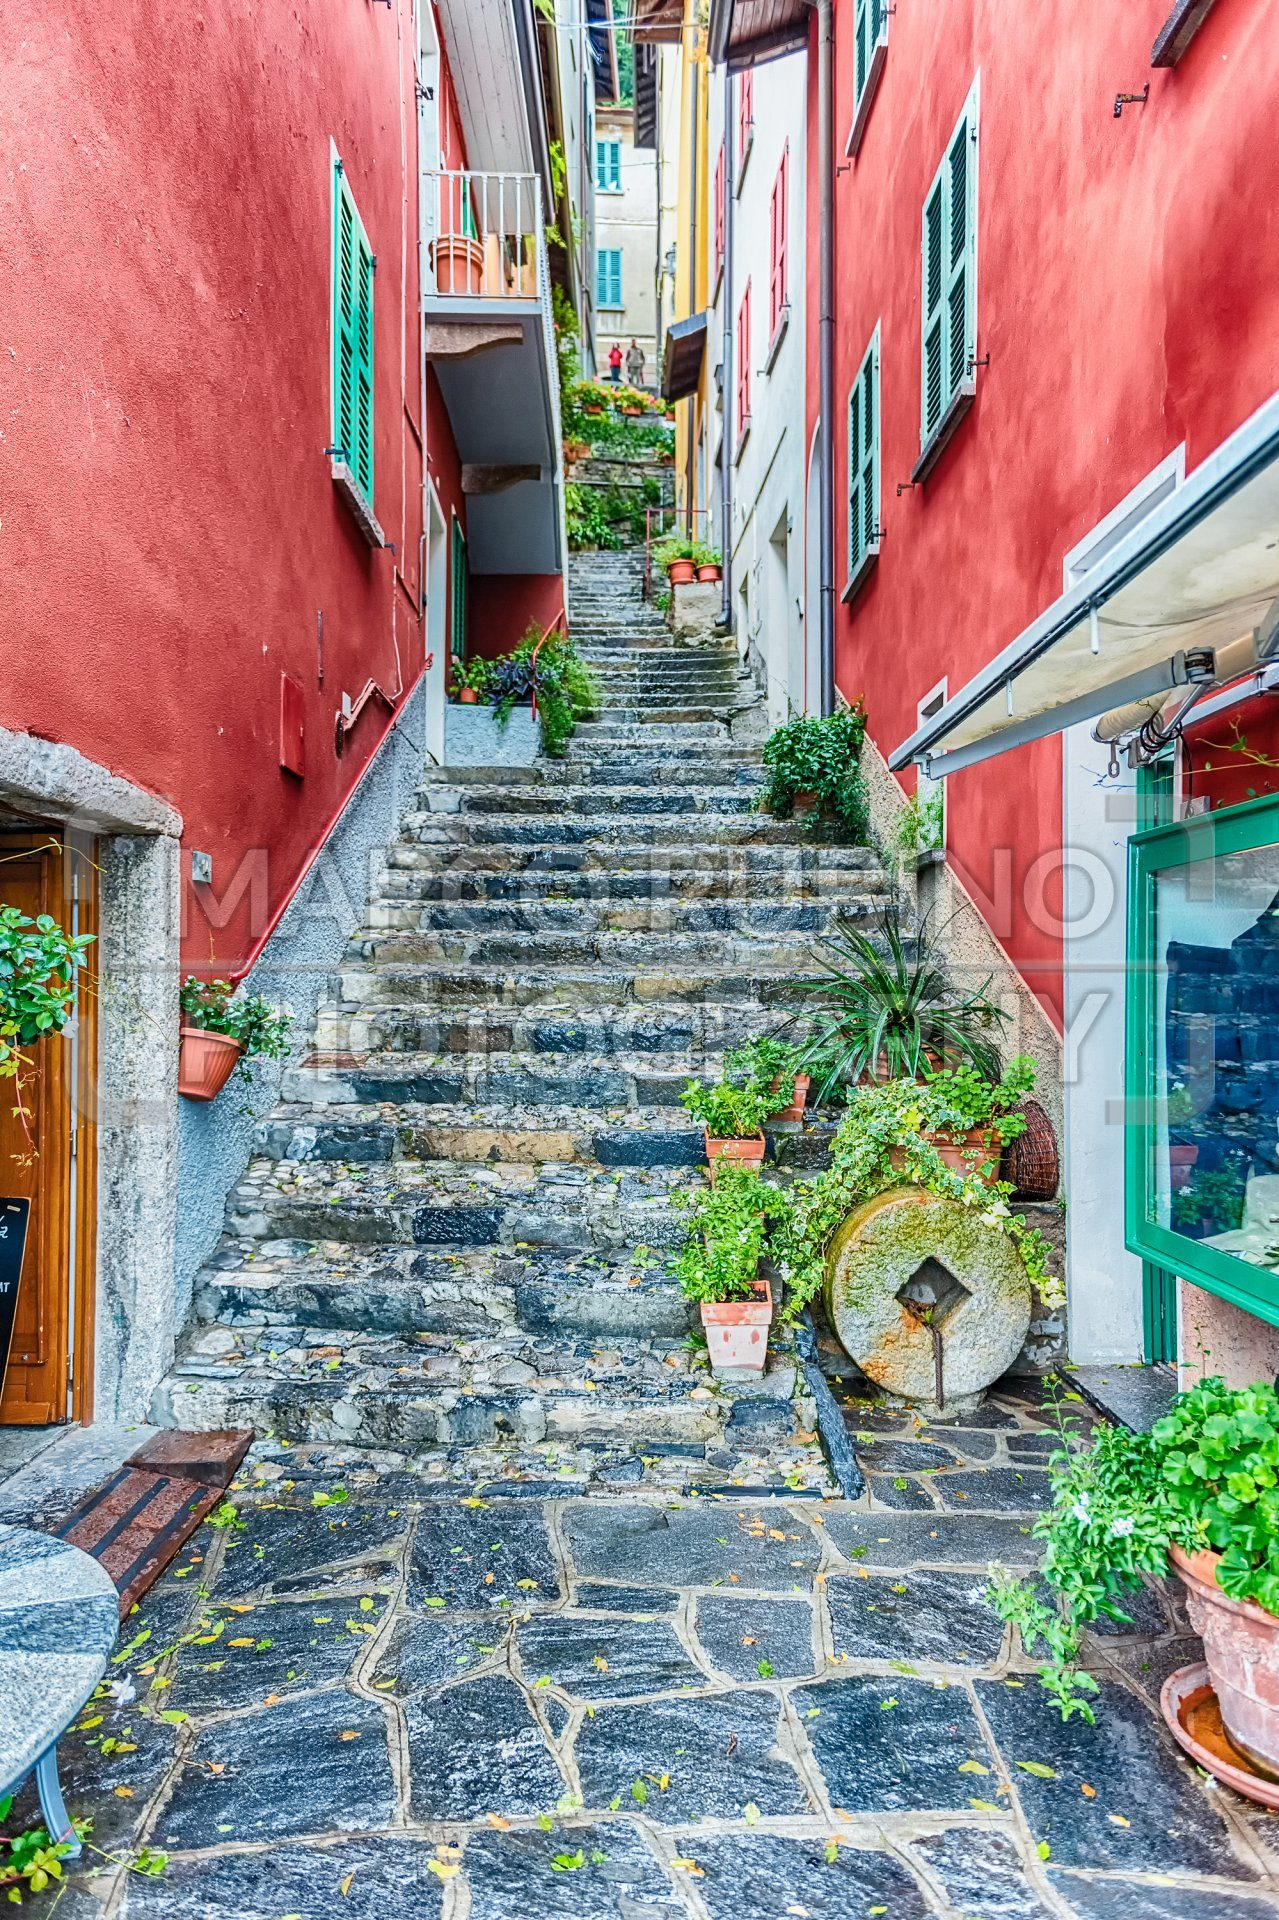 Scenic alley in Varenna town, Lake Como, Italy - Marco Rubino | Photography - Inspiring imagery for creative projects